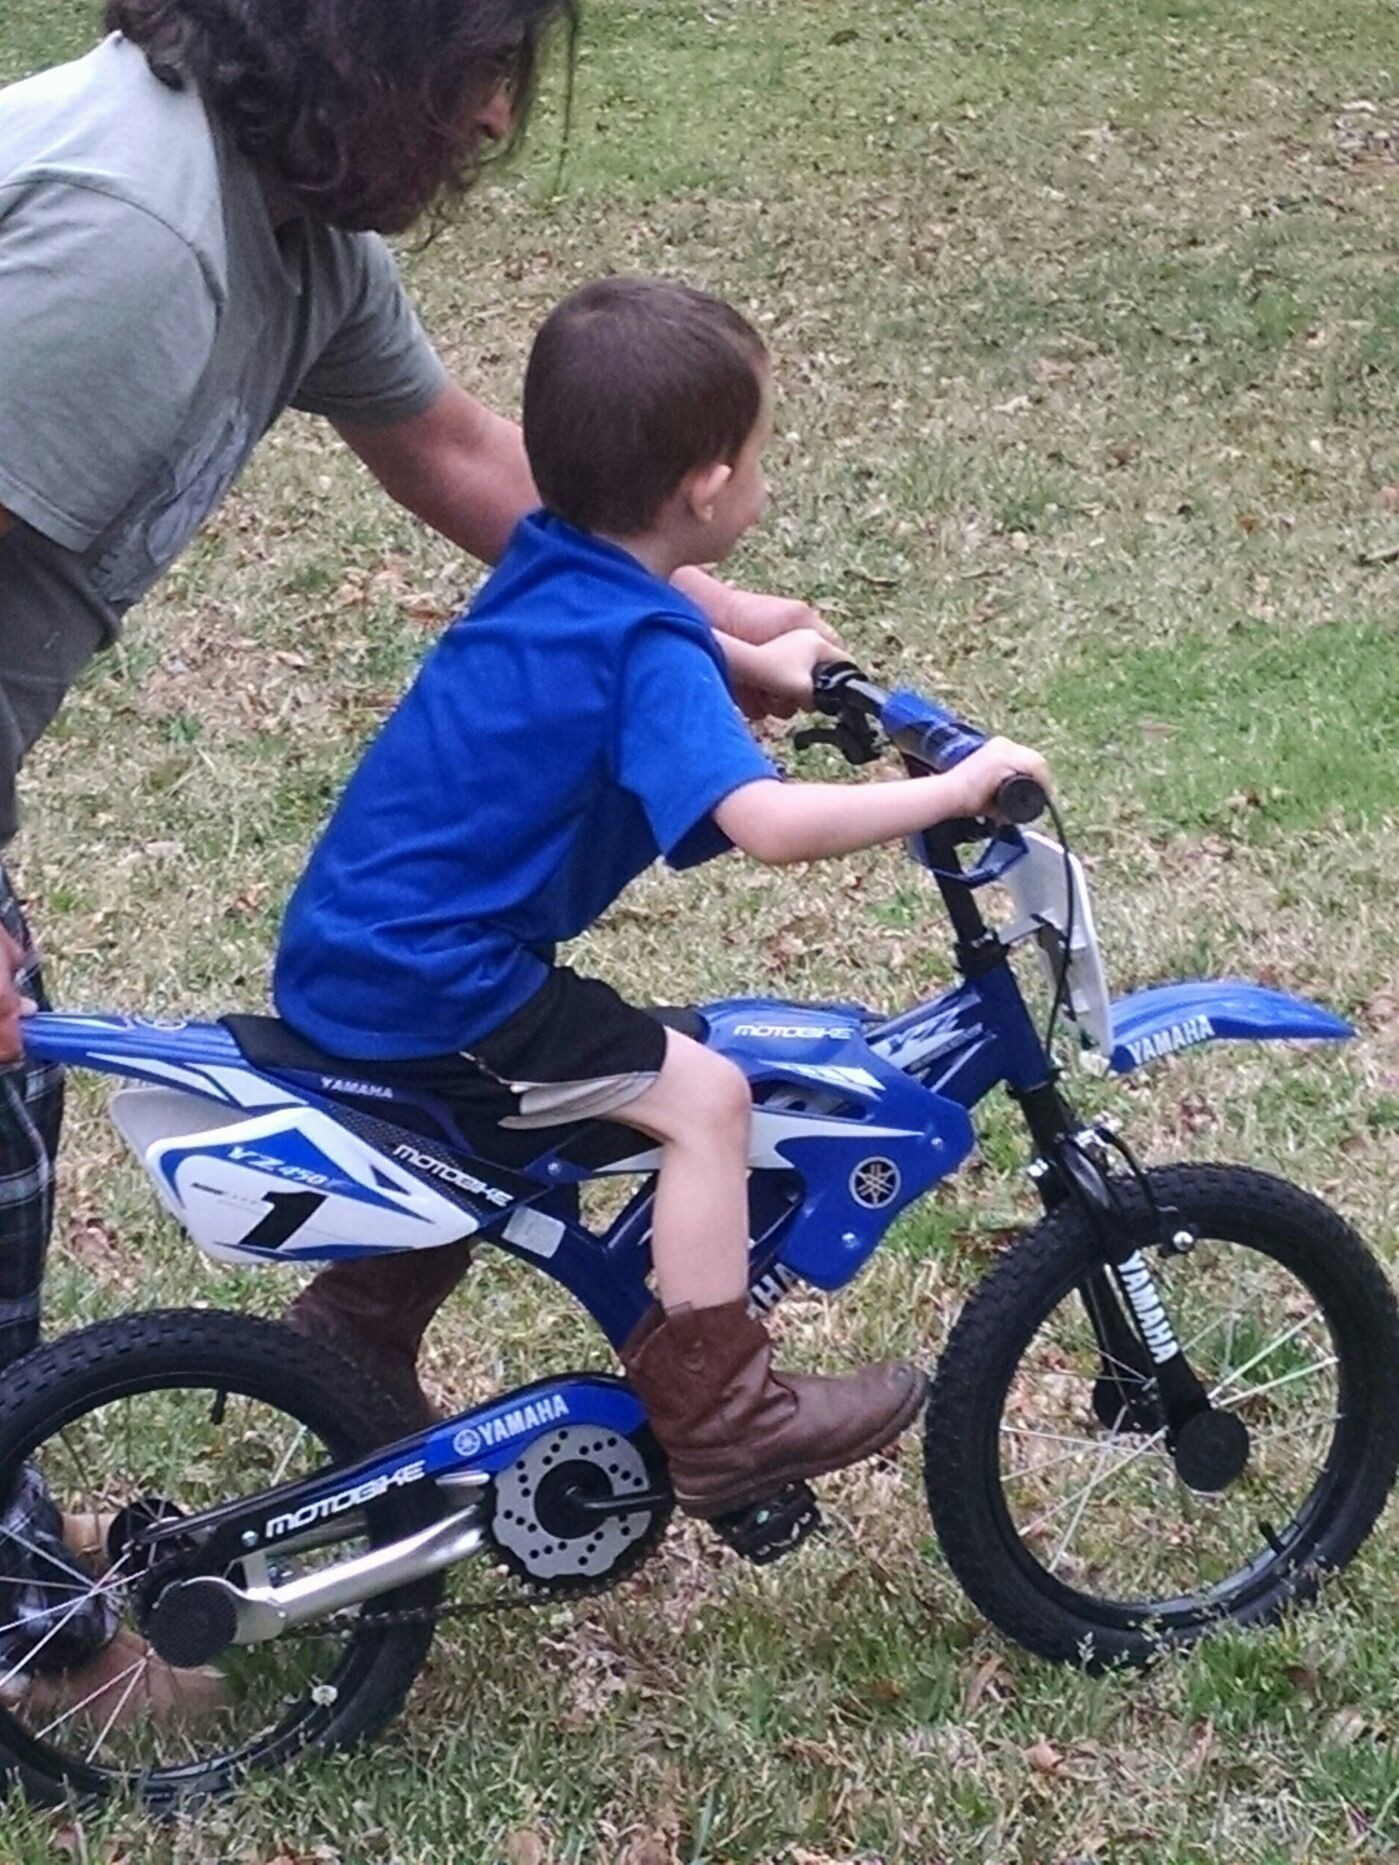 Learning to ride w/o training wheels...